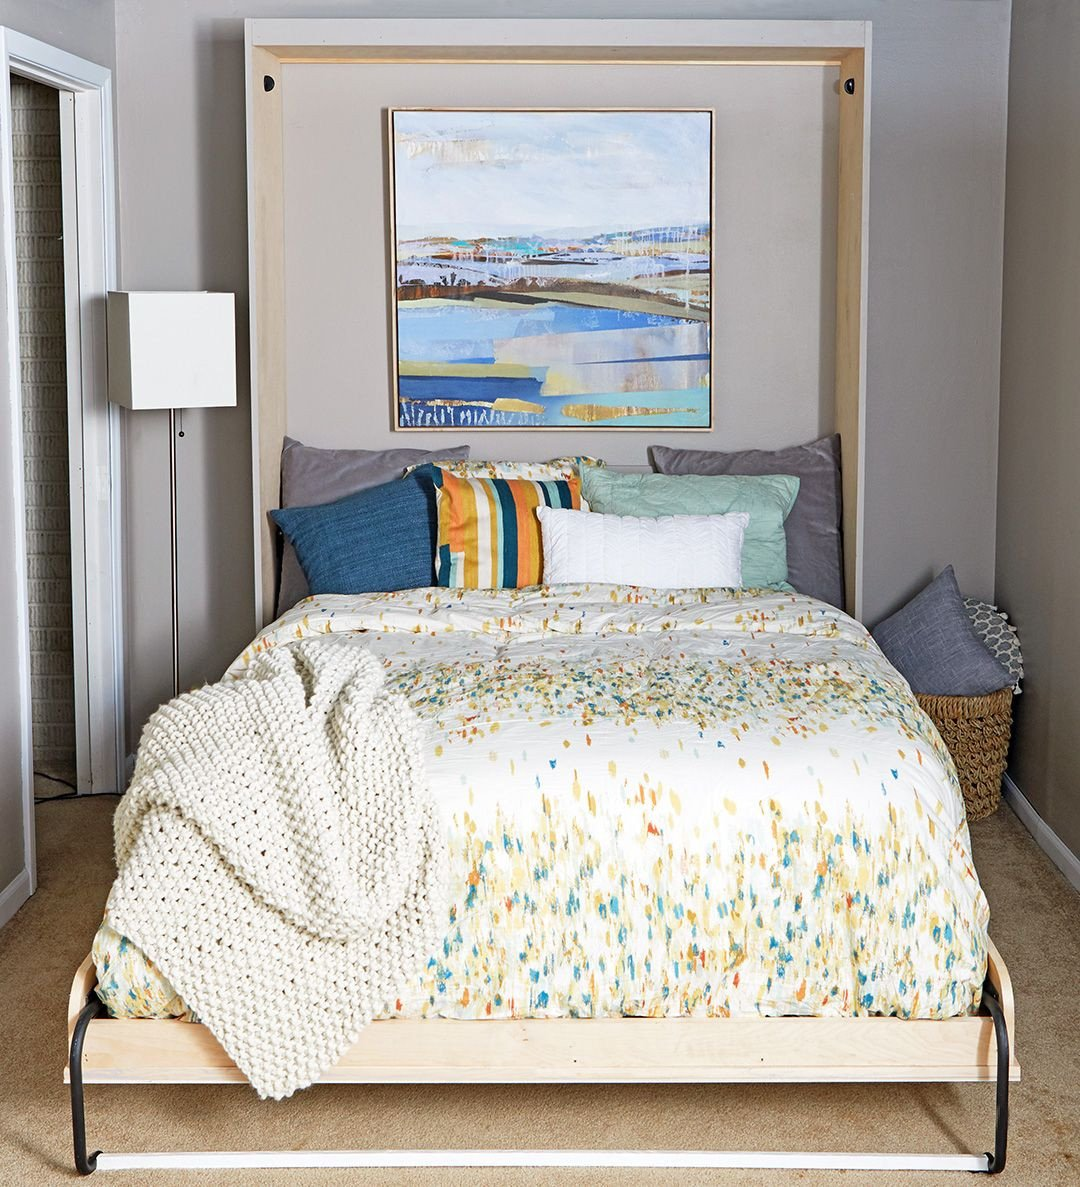 Space Saving Bedroom Ideas Fresh This Space Saving Diy Bed Will Make Any Room Guest Ready